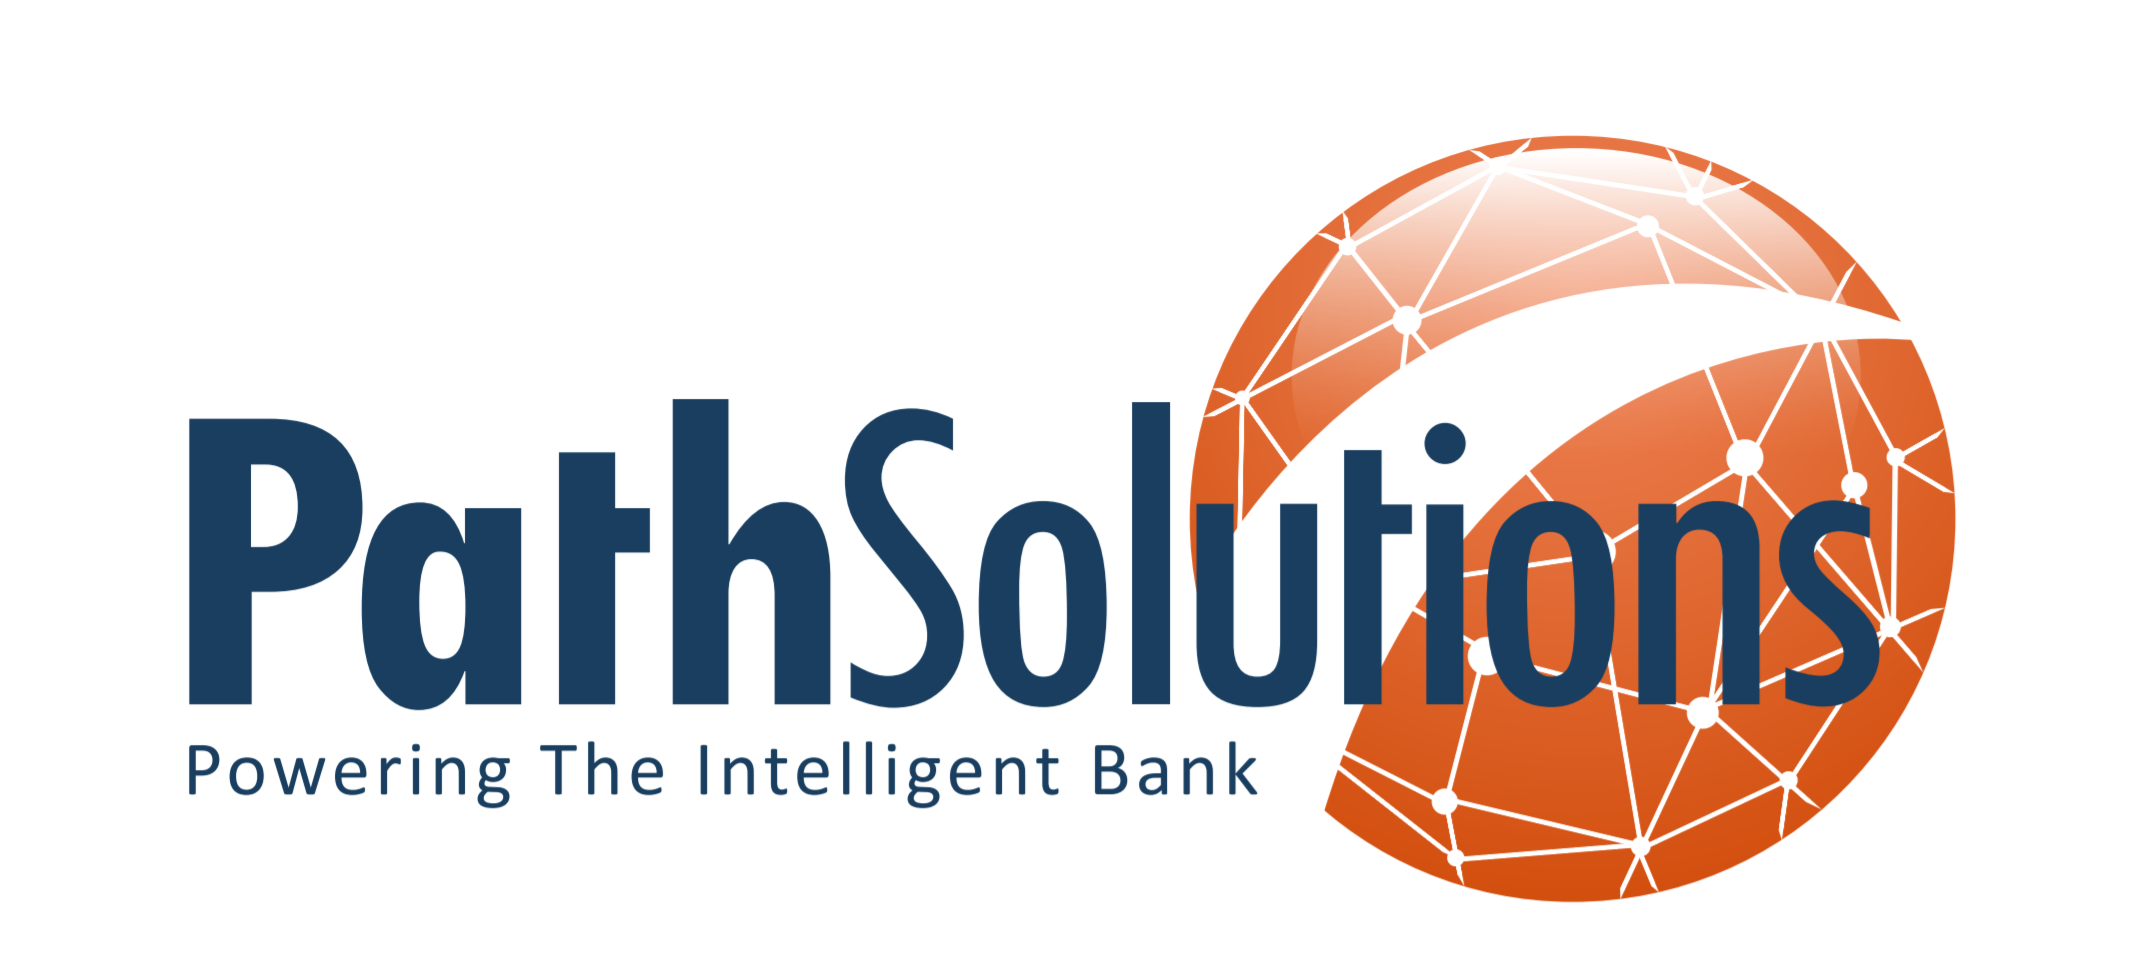 Path Solutions Strengthens Position in Islamic Banking With New Award